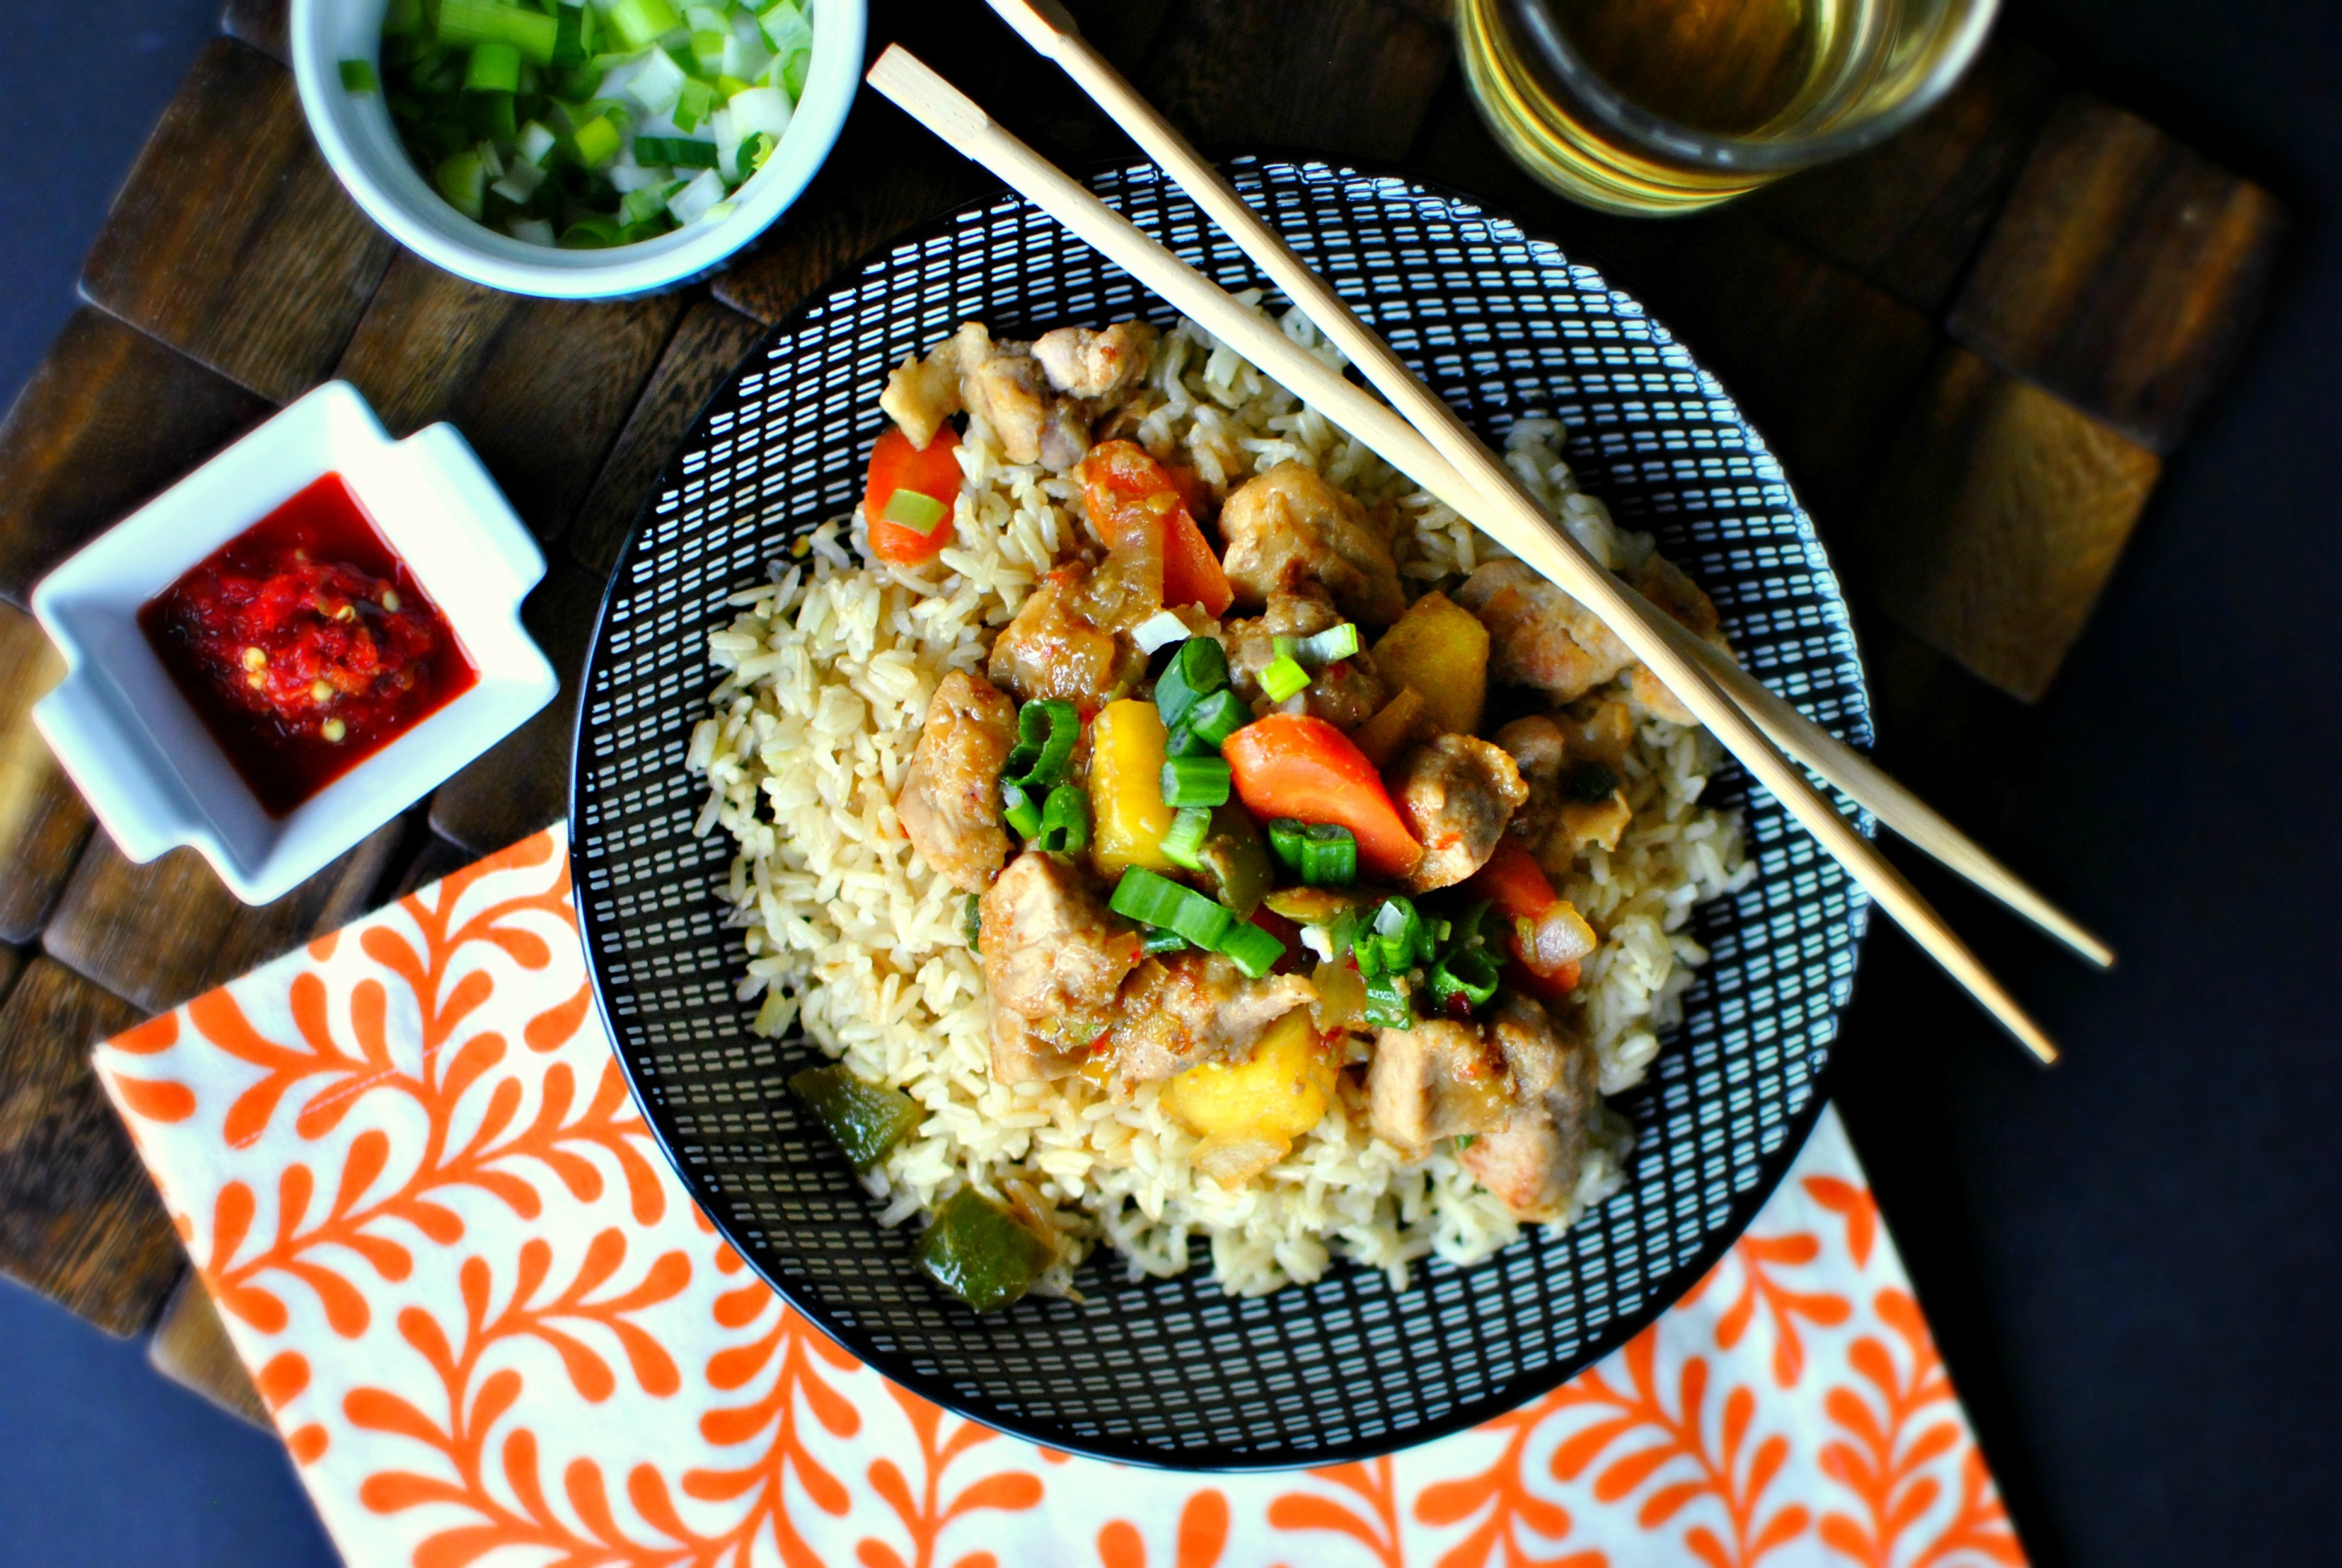 Best pork teriyaki stir fry recipe